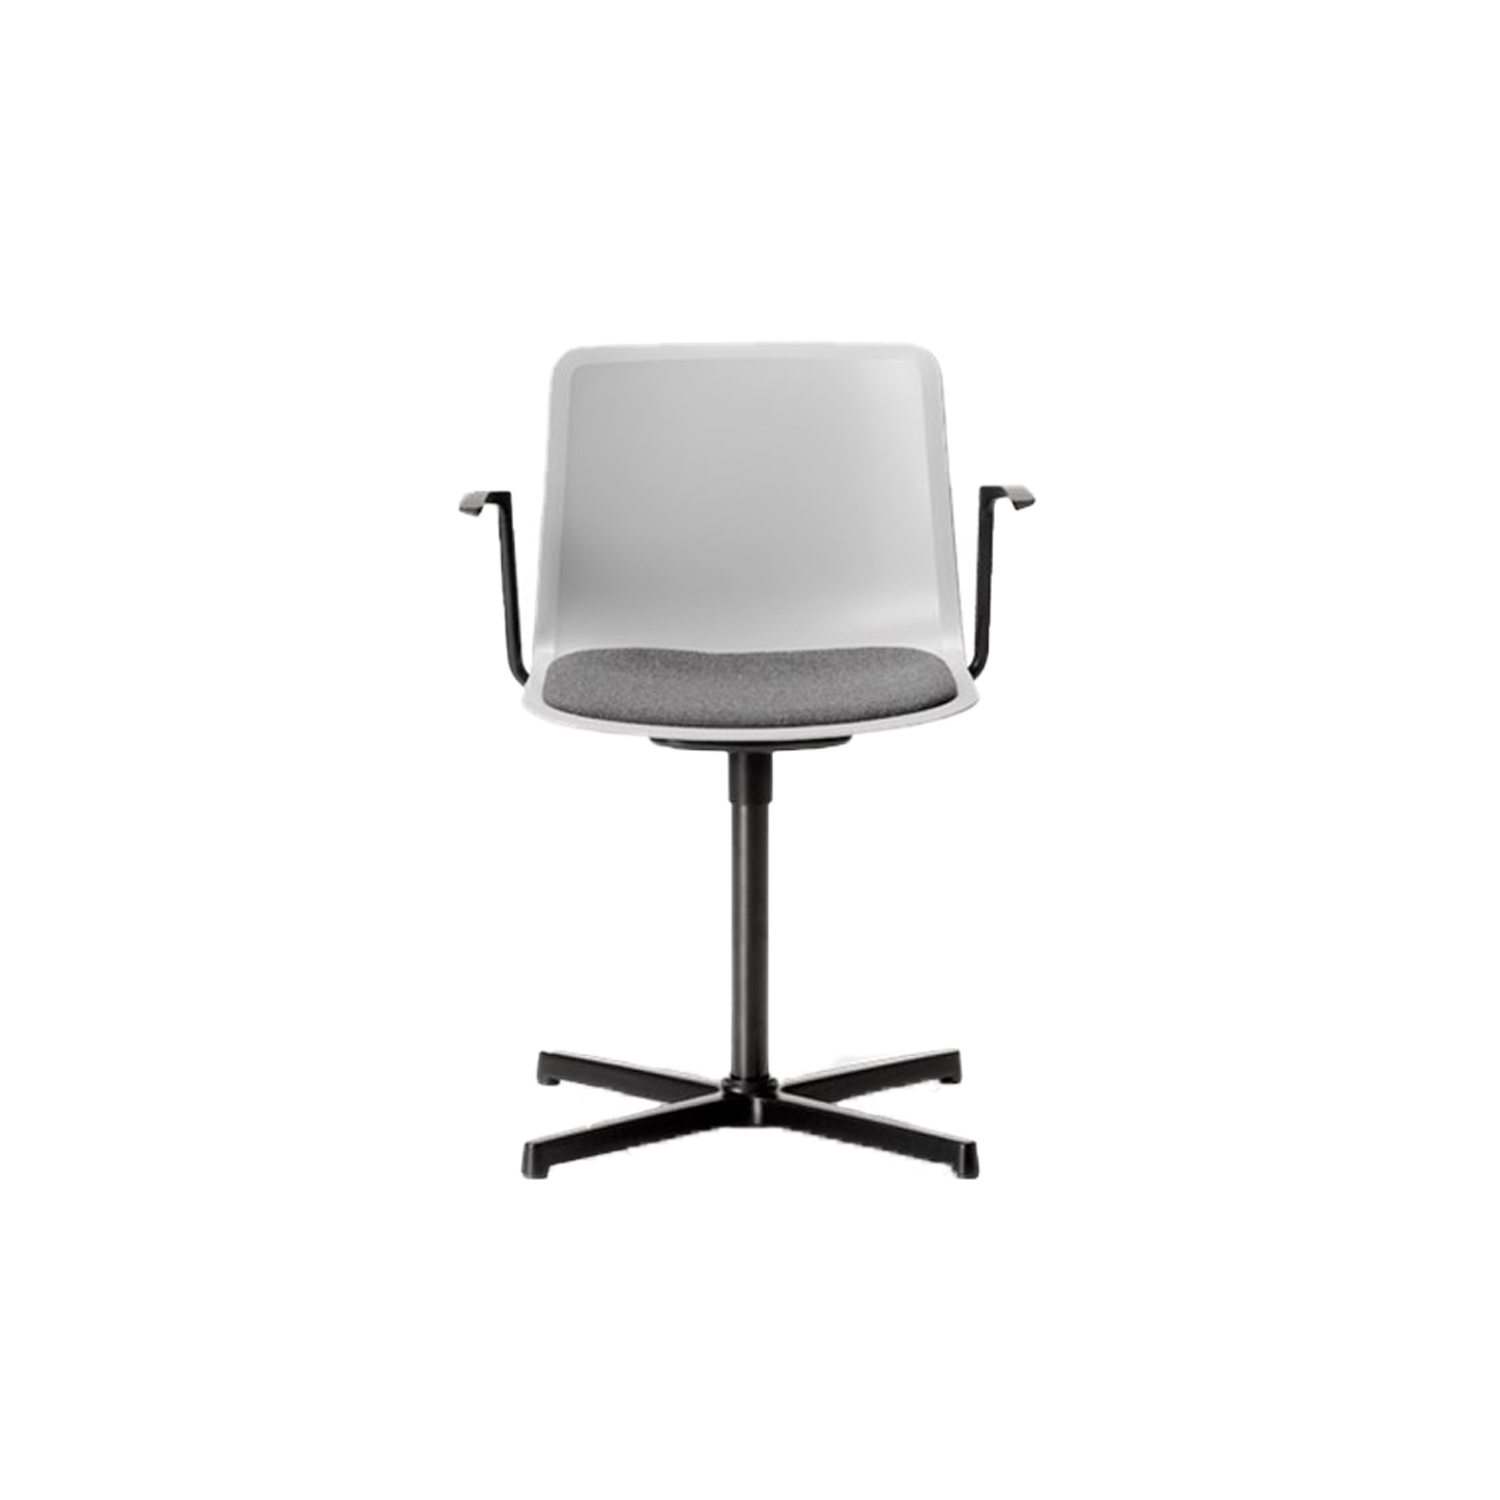 Pato Swivel X Base Chair Seat Upholstered - Pato Swivel features a 4-point swivel base with optional casters, making it ideal for both task seating and conference rooms. The chair can be tuned from basic to exclusive with optional upholstery.  Pato is a prime example of our focus on sustainability and protecting the environment, reflected in a chair that's 100% renewable and recyclable. All components can be incorporated into future furniture production, thus contributing to a circular economy by minimising the use of materials, resources, waste and pollution.   Merging traditional production methods with cutting-edge technology, Pato is a human-centric, highly versatile series of multi-purpose functional furniture that draws on our in-depth experience with materials, immaculate detailing and heritage of fine craftsmanship. Allowing us to apply our high standards of texture, finish and carpentry techniques to an array of materials in addition to wood for products aimed at a mass market.   With its clean lines and curves, Pato echoes the ethos of Danish-Icelandic design duo Welling/Ludvik. Demonstrating their belief that good design has the ability to be interesting, even when reduced to its most simple form. Where anything extraneous is eliminated and every detail has a purpose.   Together we spent nearly three years developing the shell structure to have a soft surface that's also wear and tear resistant. Enhancing the chair's ability to optimally conform to the user's body is a subtle beveled edge. A technique from classic cabinetmaking, which gives the chair a sense of handcrafted finesse. Each Pato is detailed and finished by hand by our highly skilled crafts people, who refine the beveled edge and the silky, resilient surface. Setting a new standard for the execution and finish of polypropylene.   Since the success of its initial launch, we've expanded Pato into an extensive collection of variants, featuring armchairs, barstools, office swivel chairs and a long